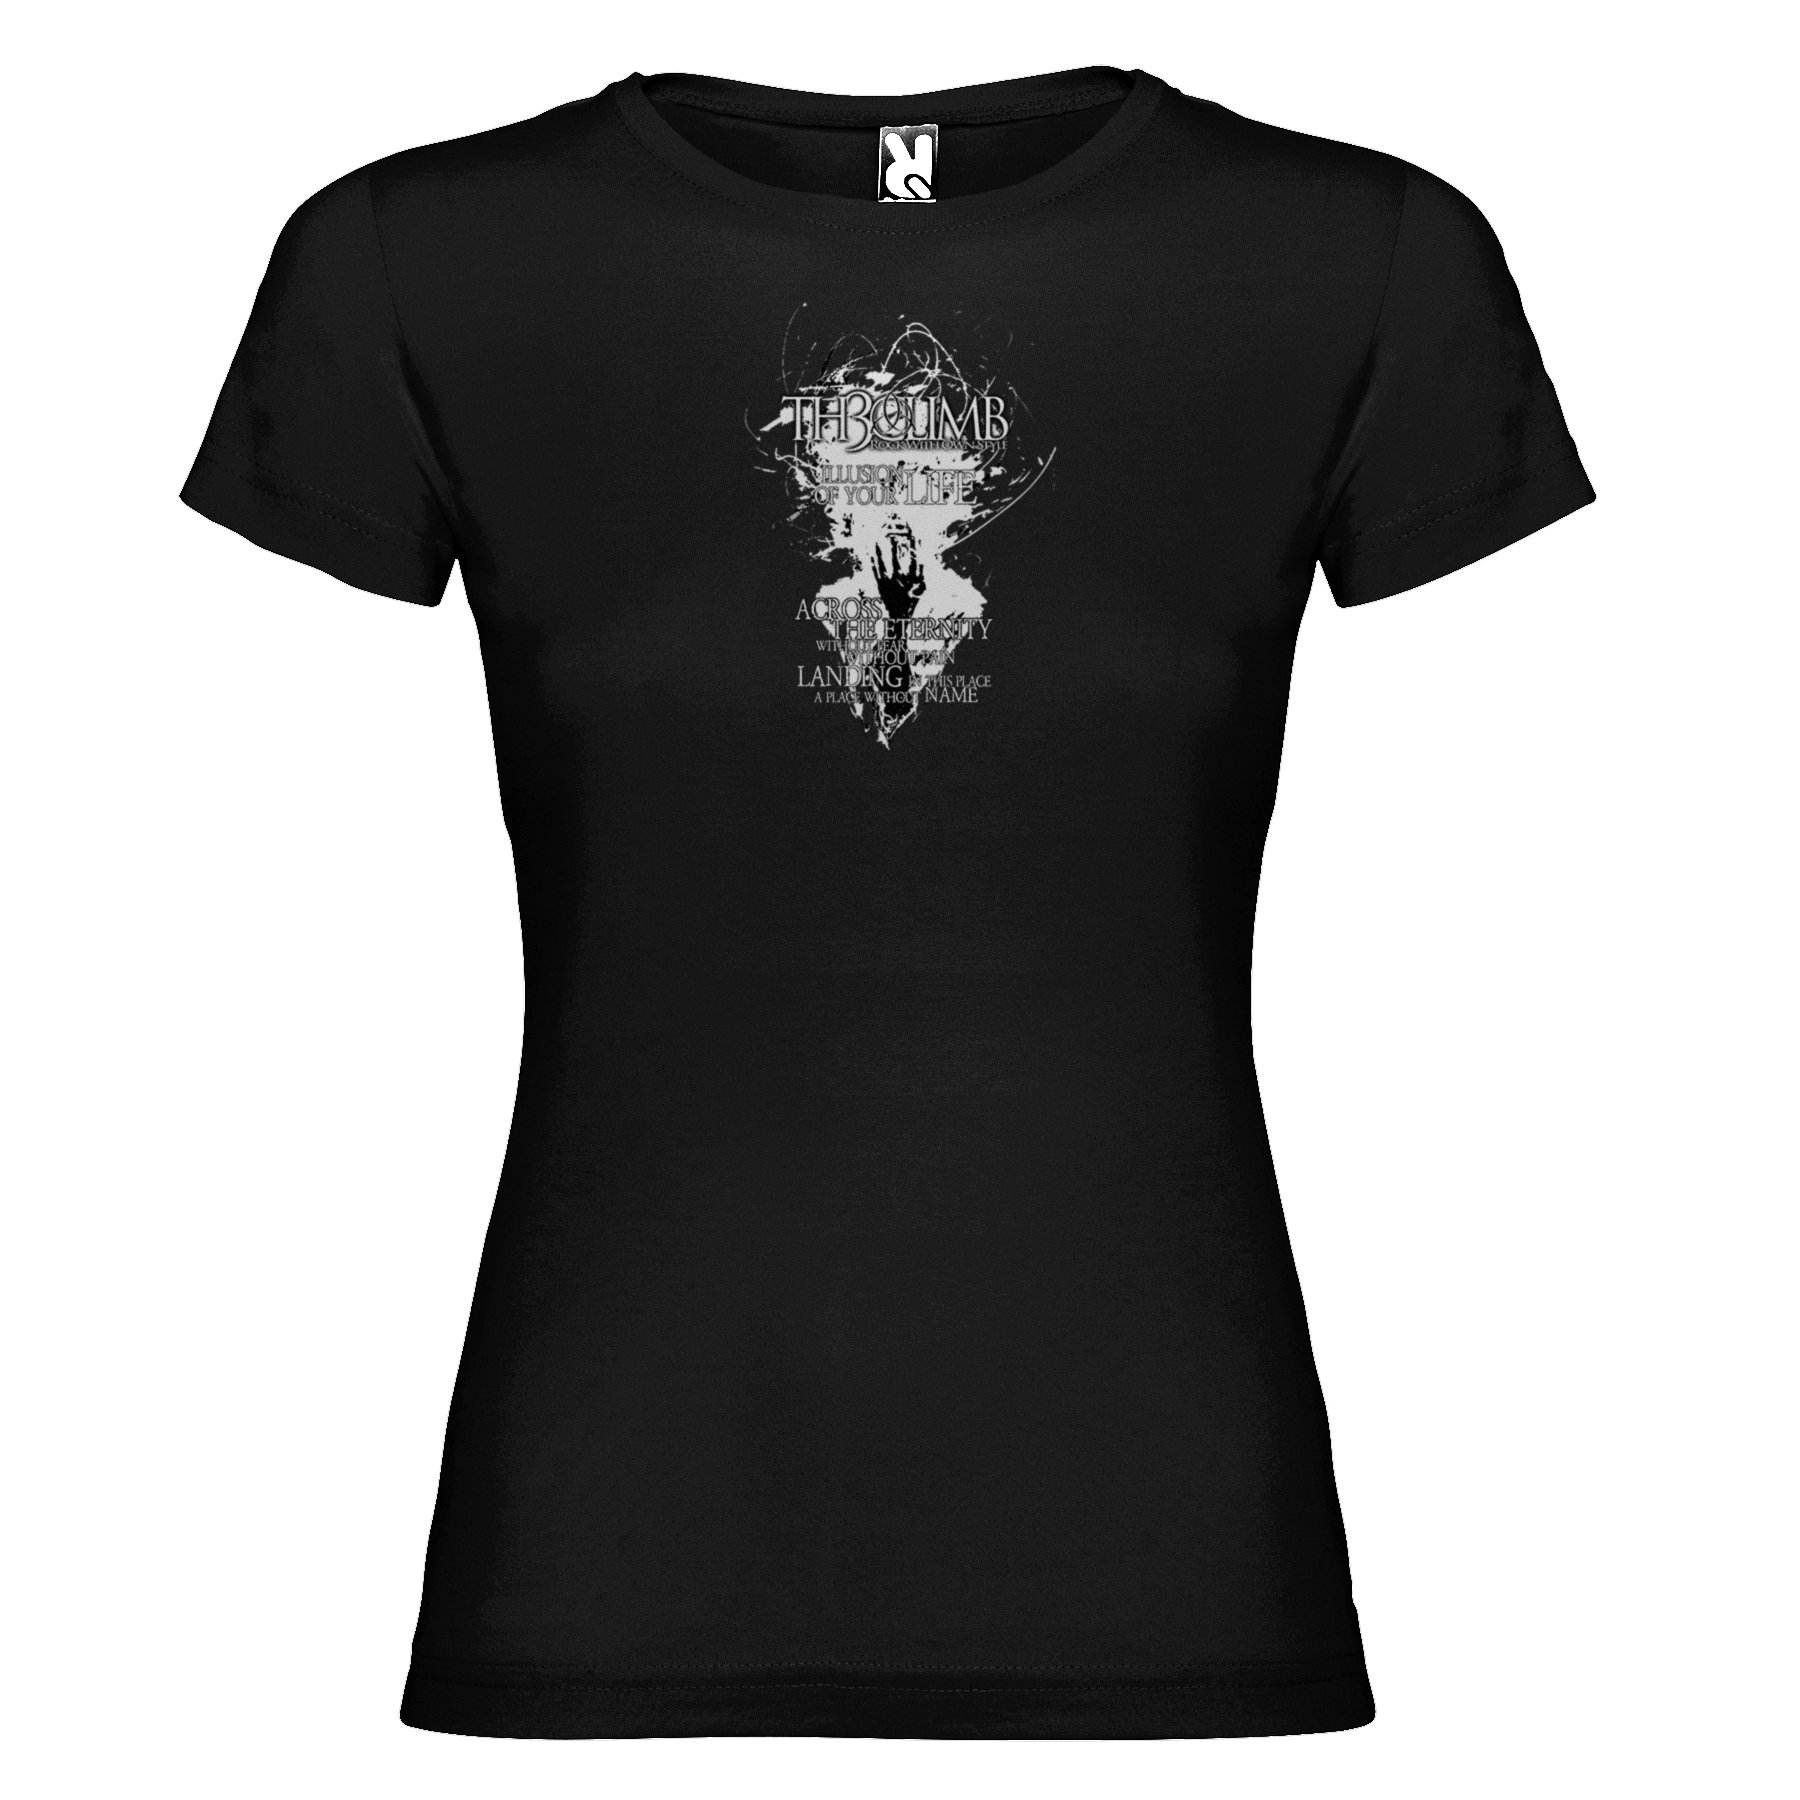 Th3Climb - Camiseta Chica Illusion - Merchanfy Imprime tus camisetas